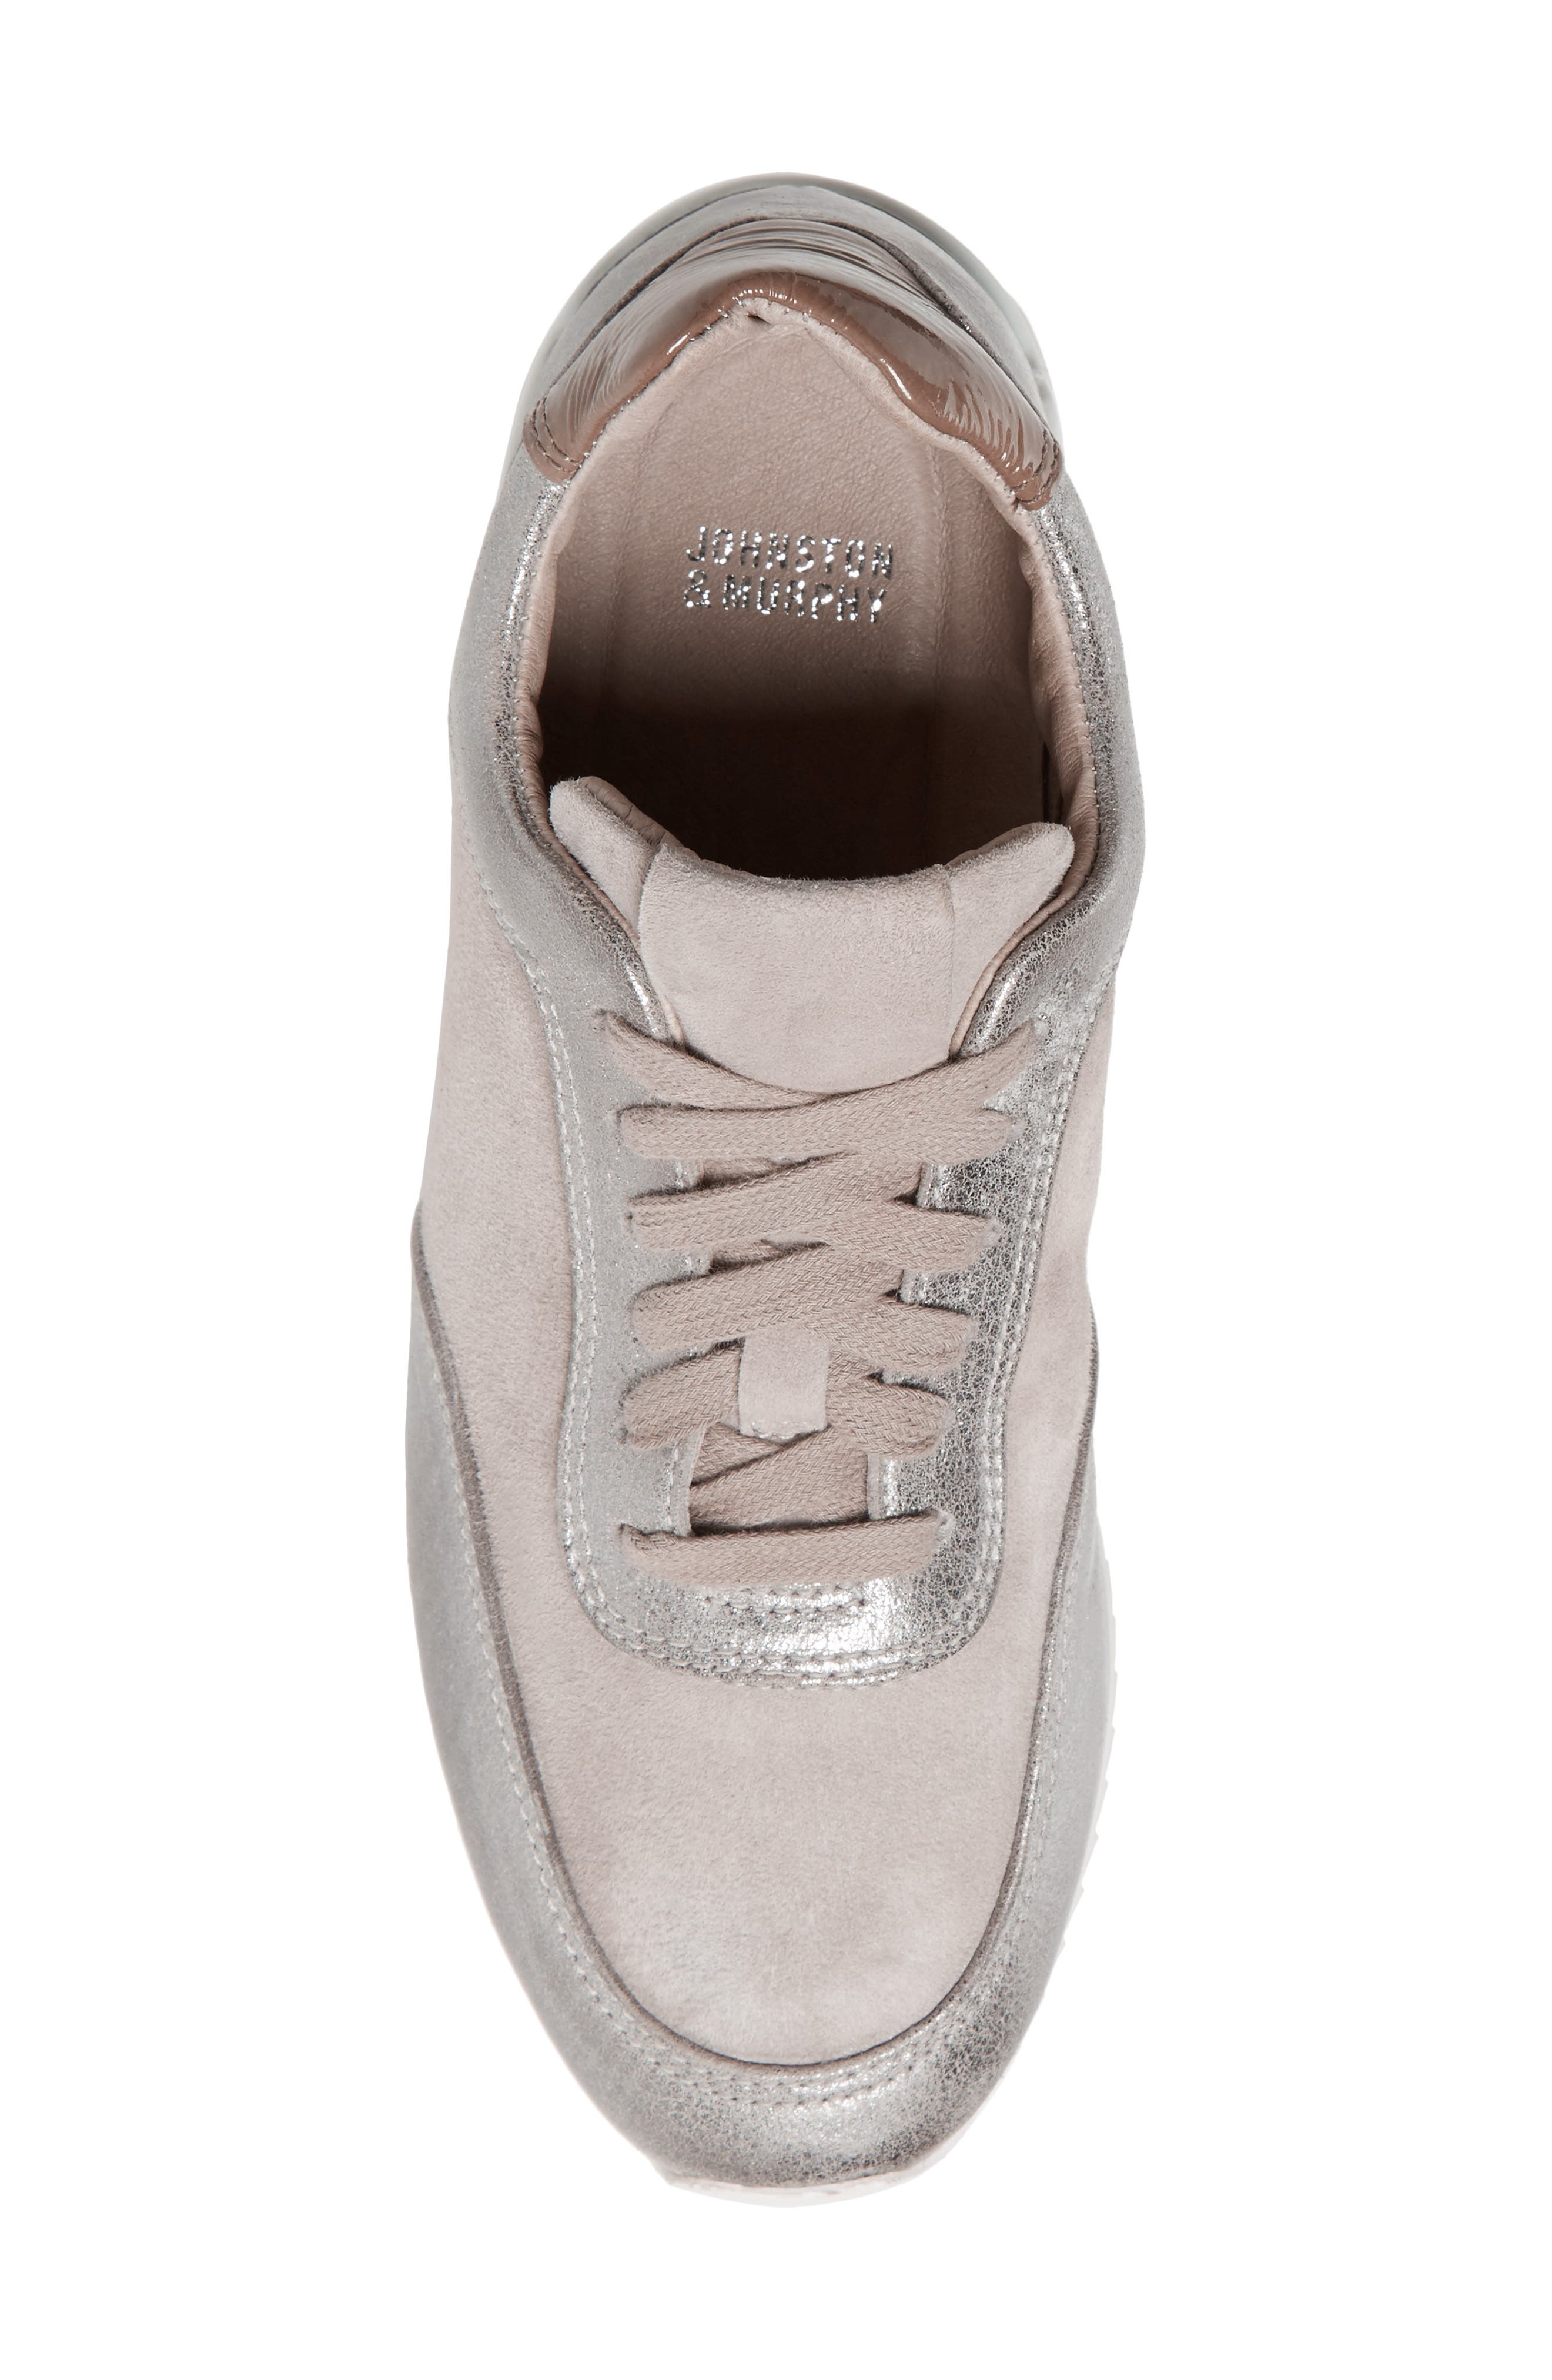 Jules Sneaker,                             Alternate thumbnail 5, color,                             Pewter Leather/ Suede